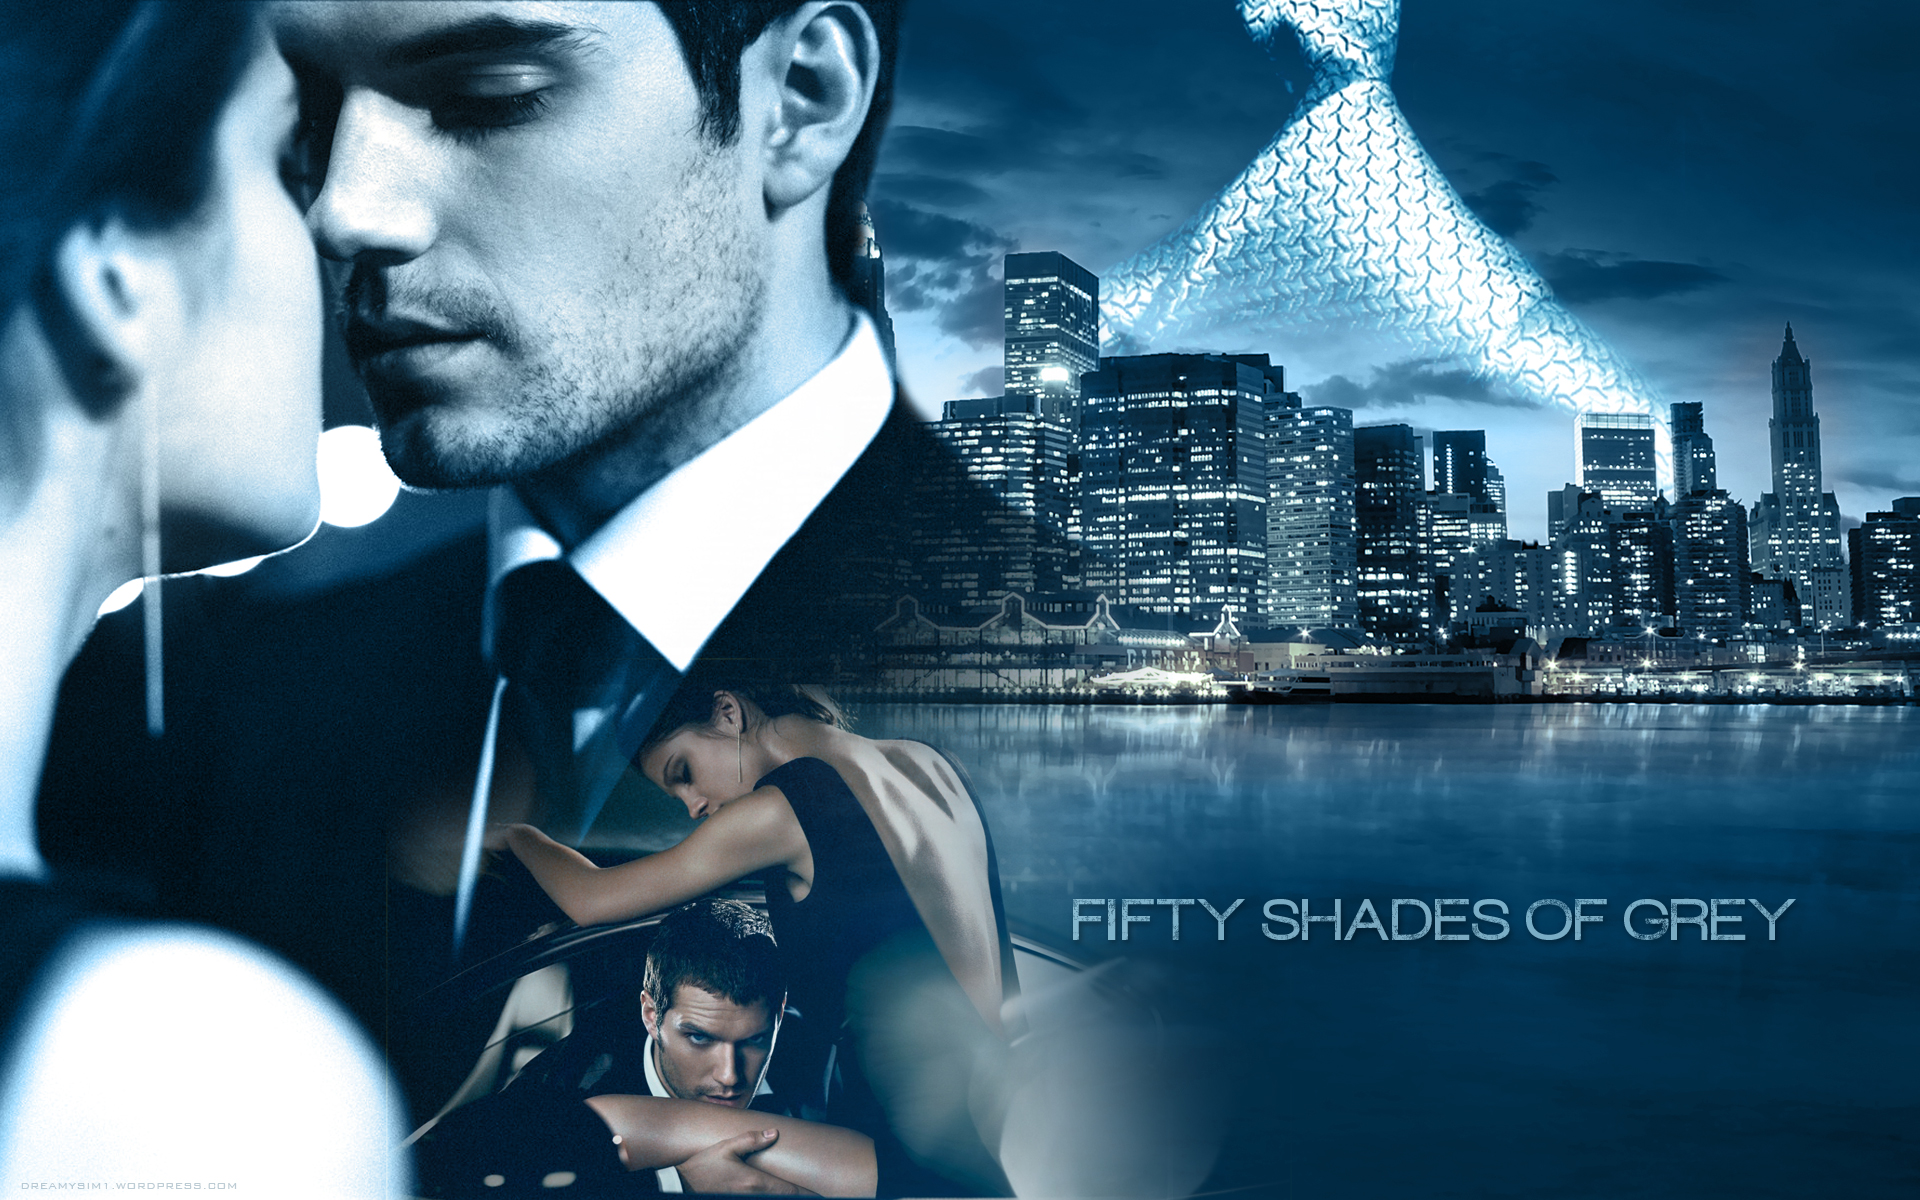 50-shades-of-grey-bande-annonce-trailer-01